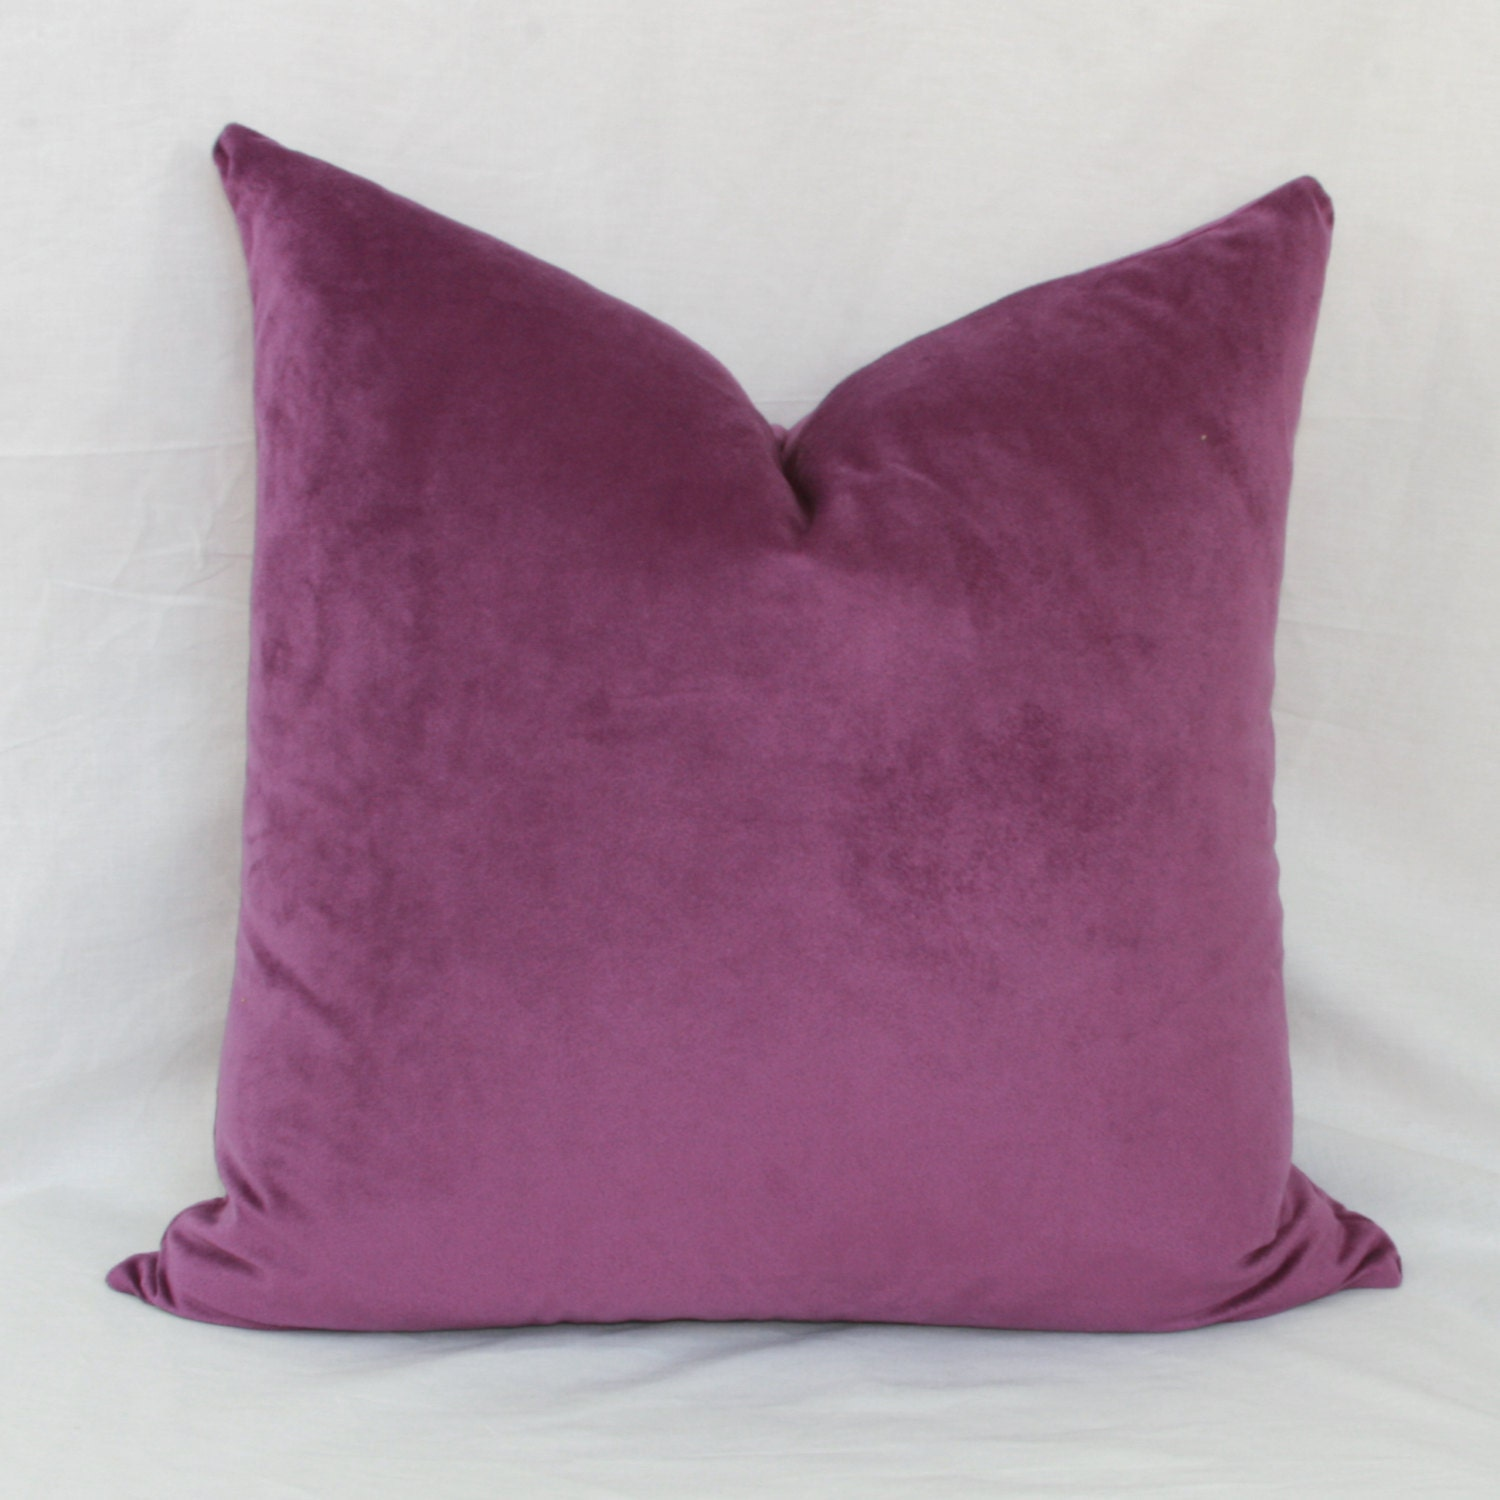 Purple velour decorative throw pillow cover. 18 x